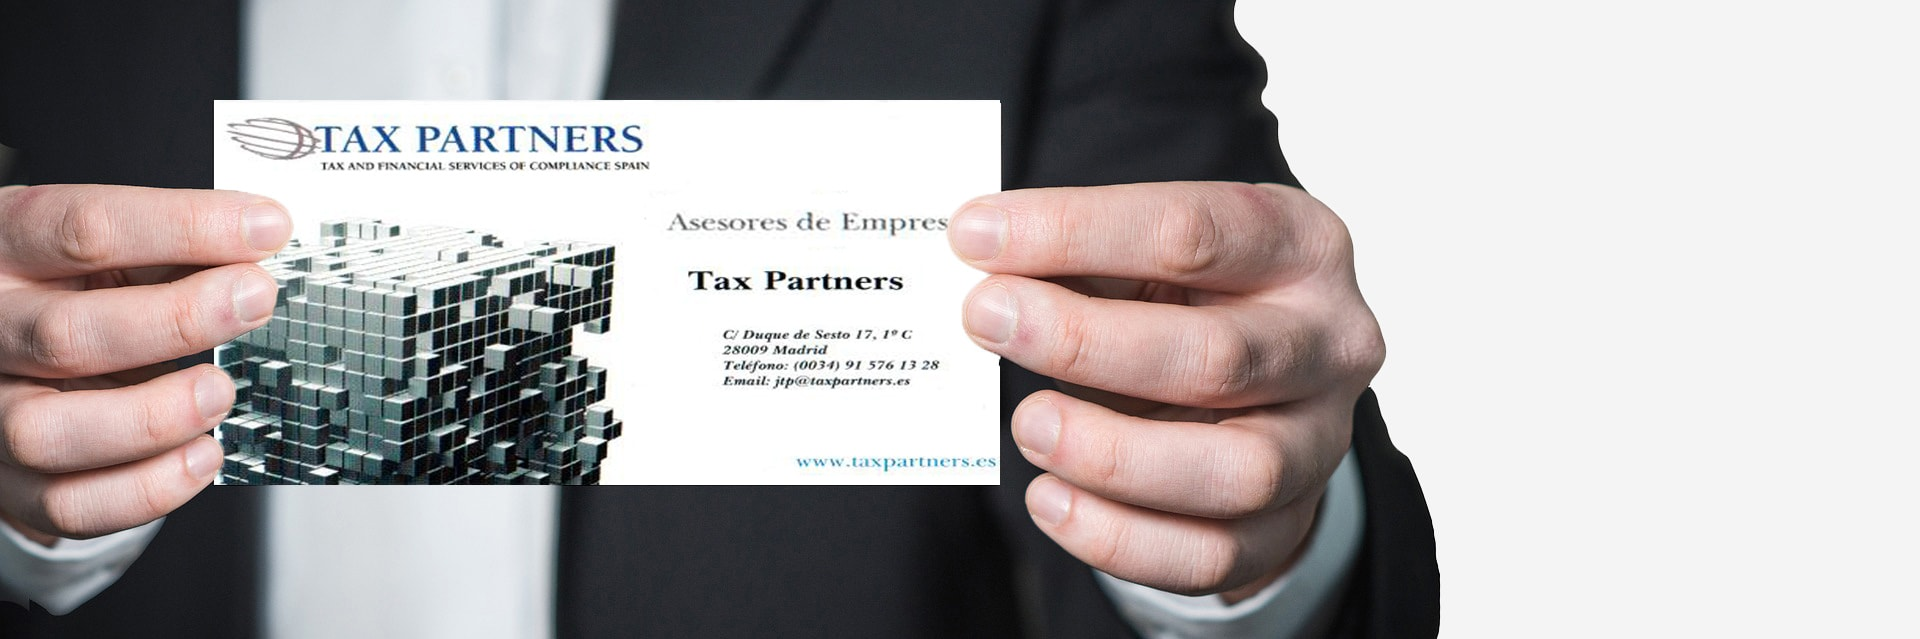 contacto tax partners